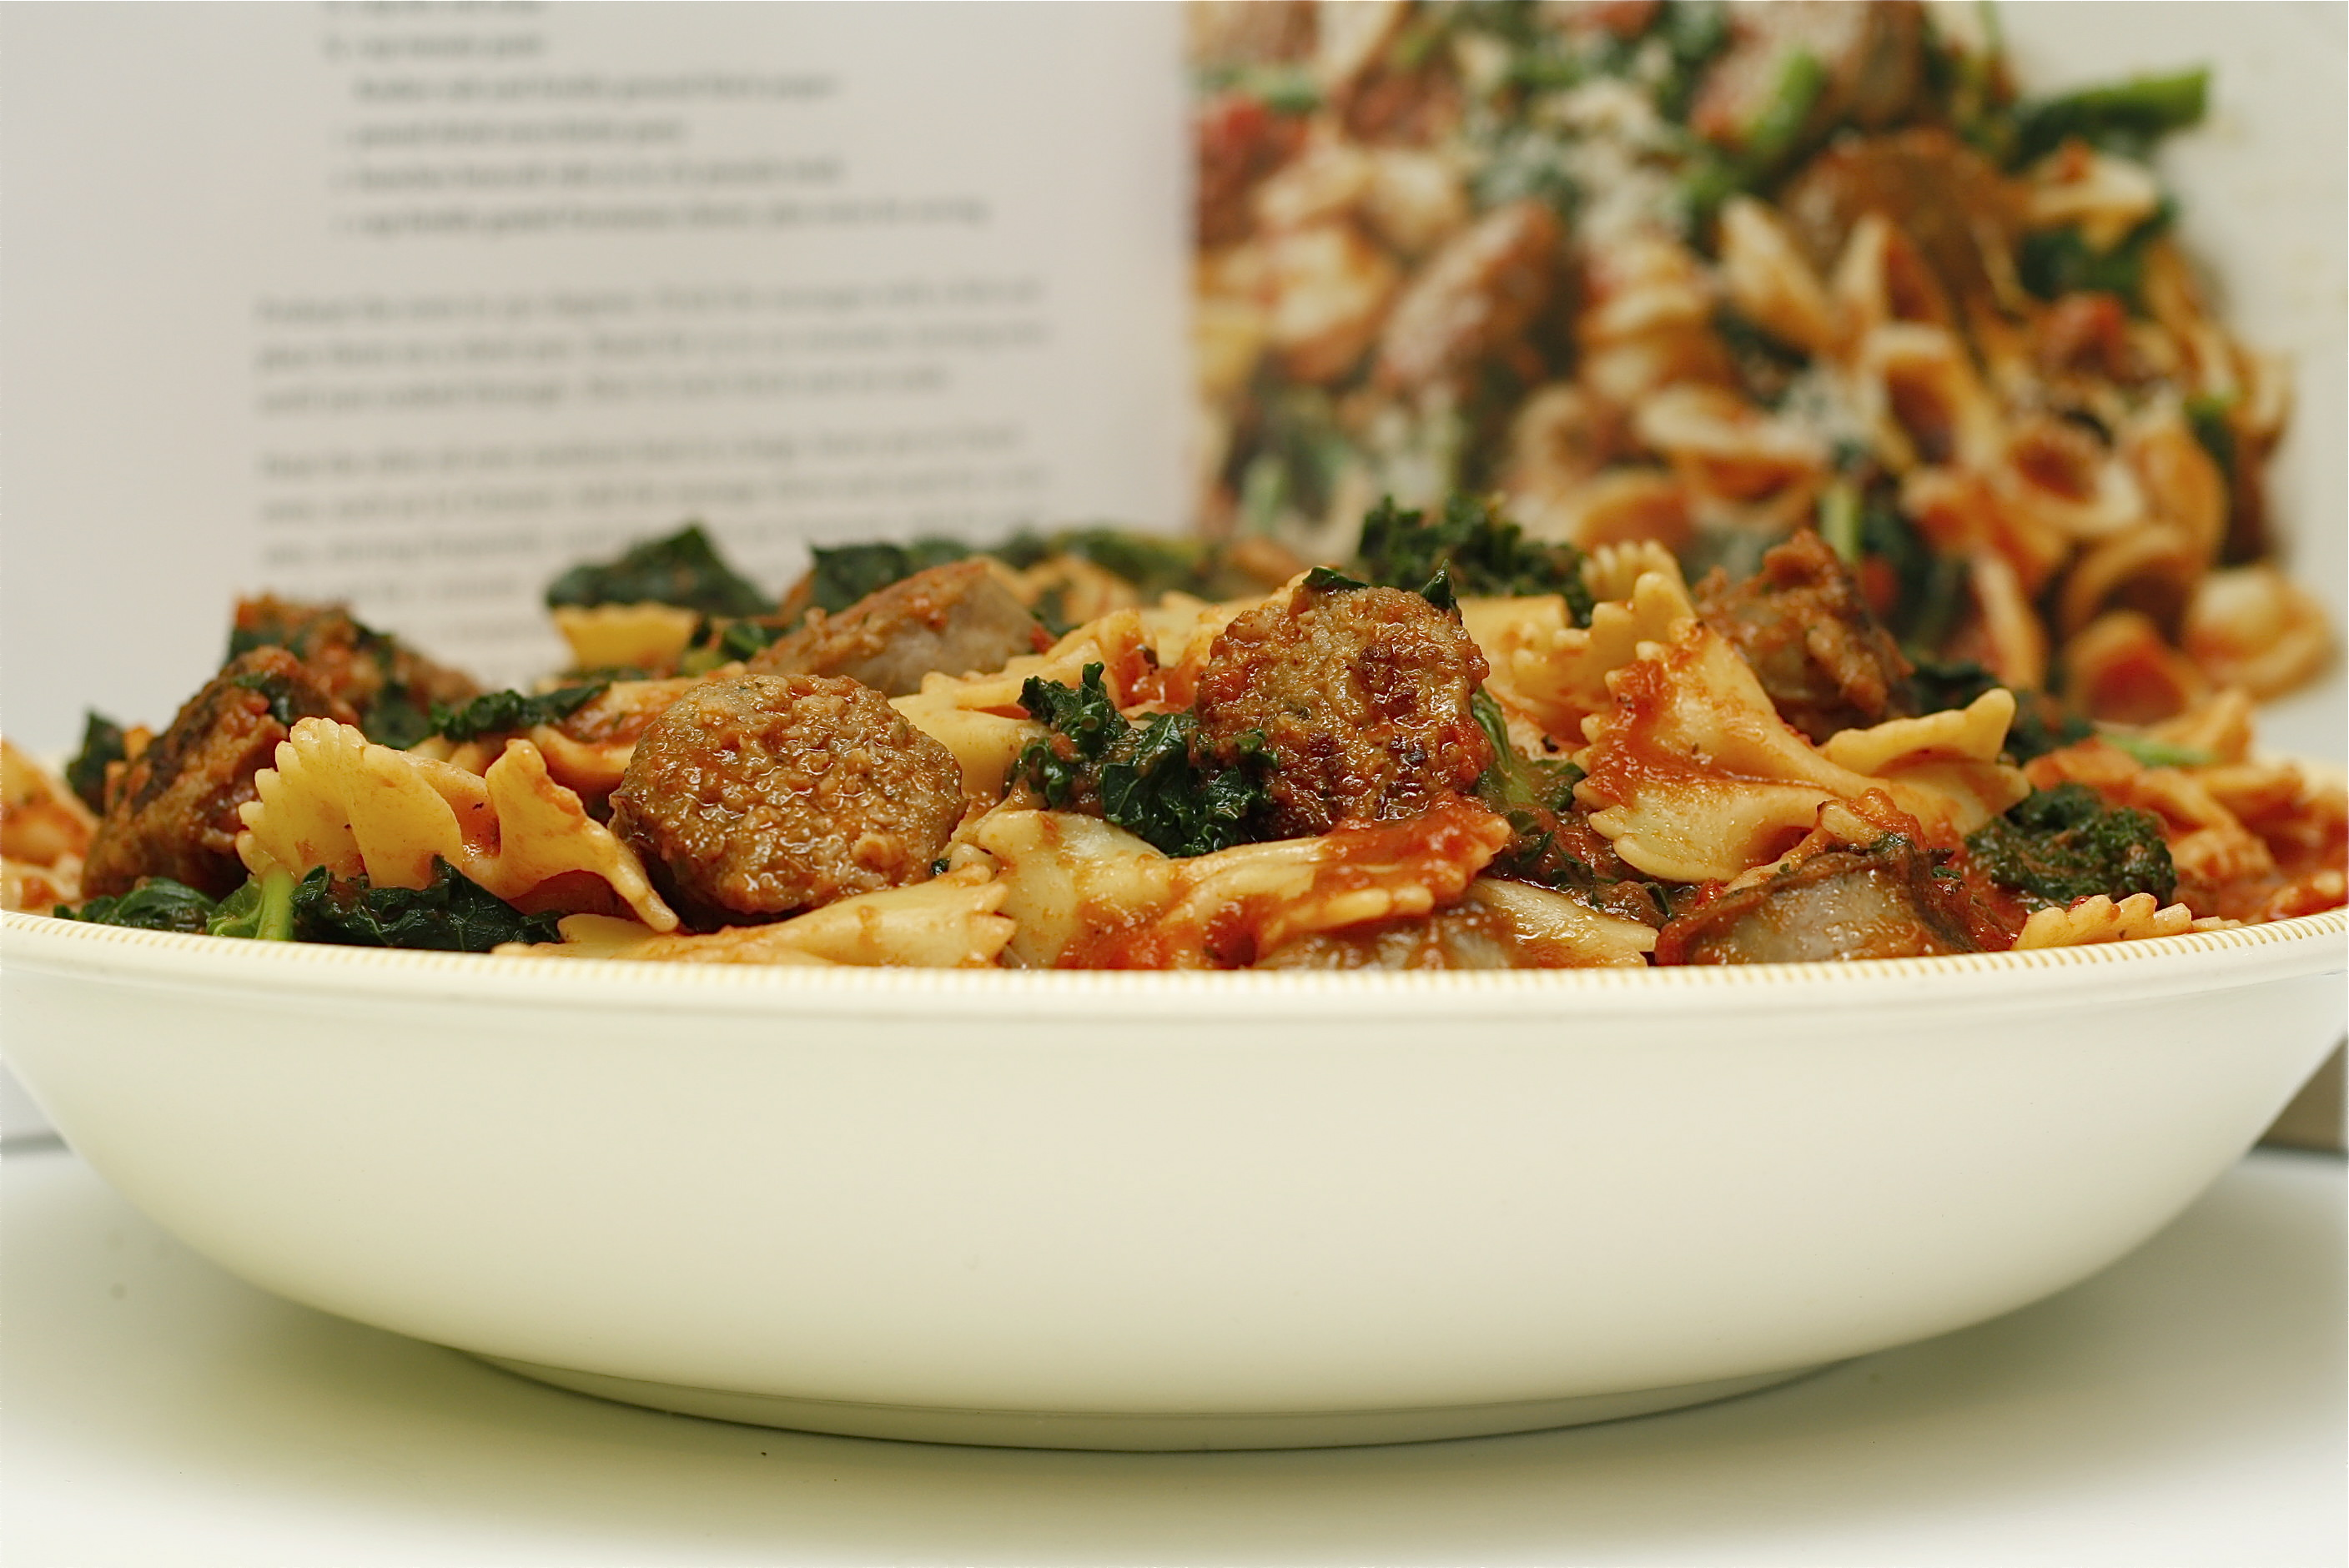 Kale and Sausage Pasta with Simple Red Sauce